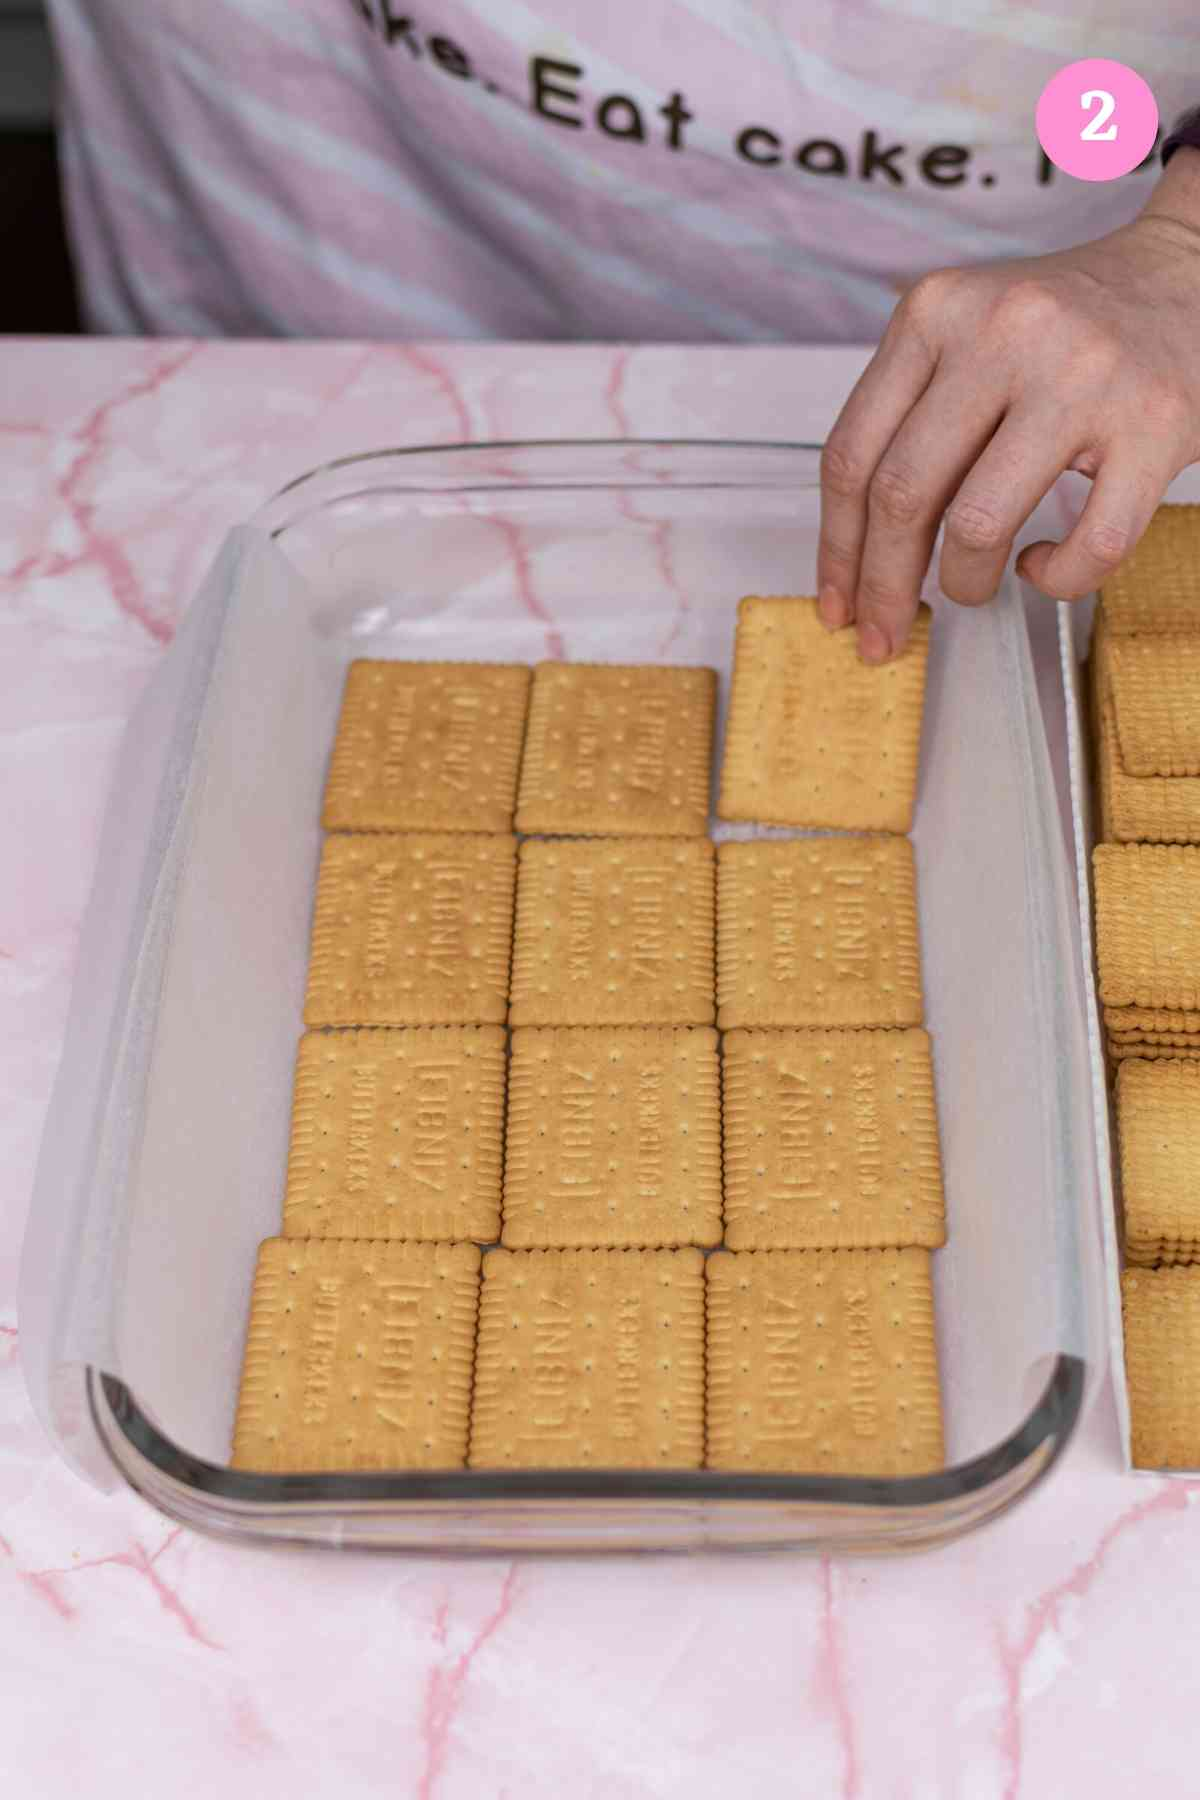 Placing bottom layer of biscuits in tray